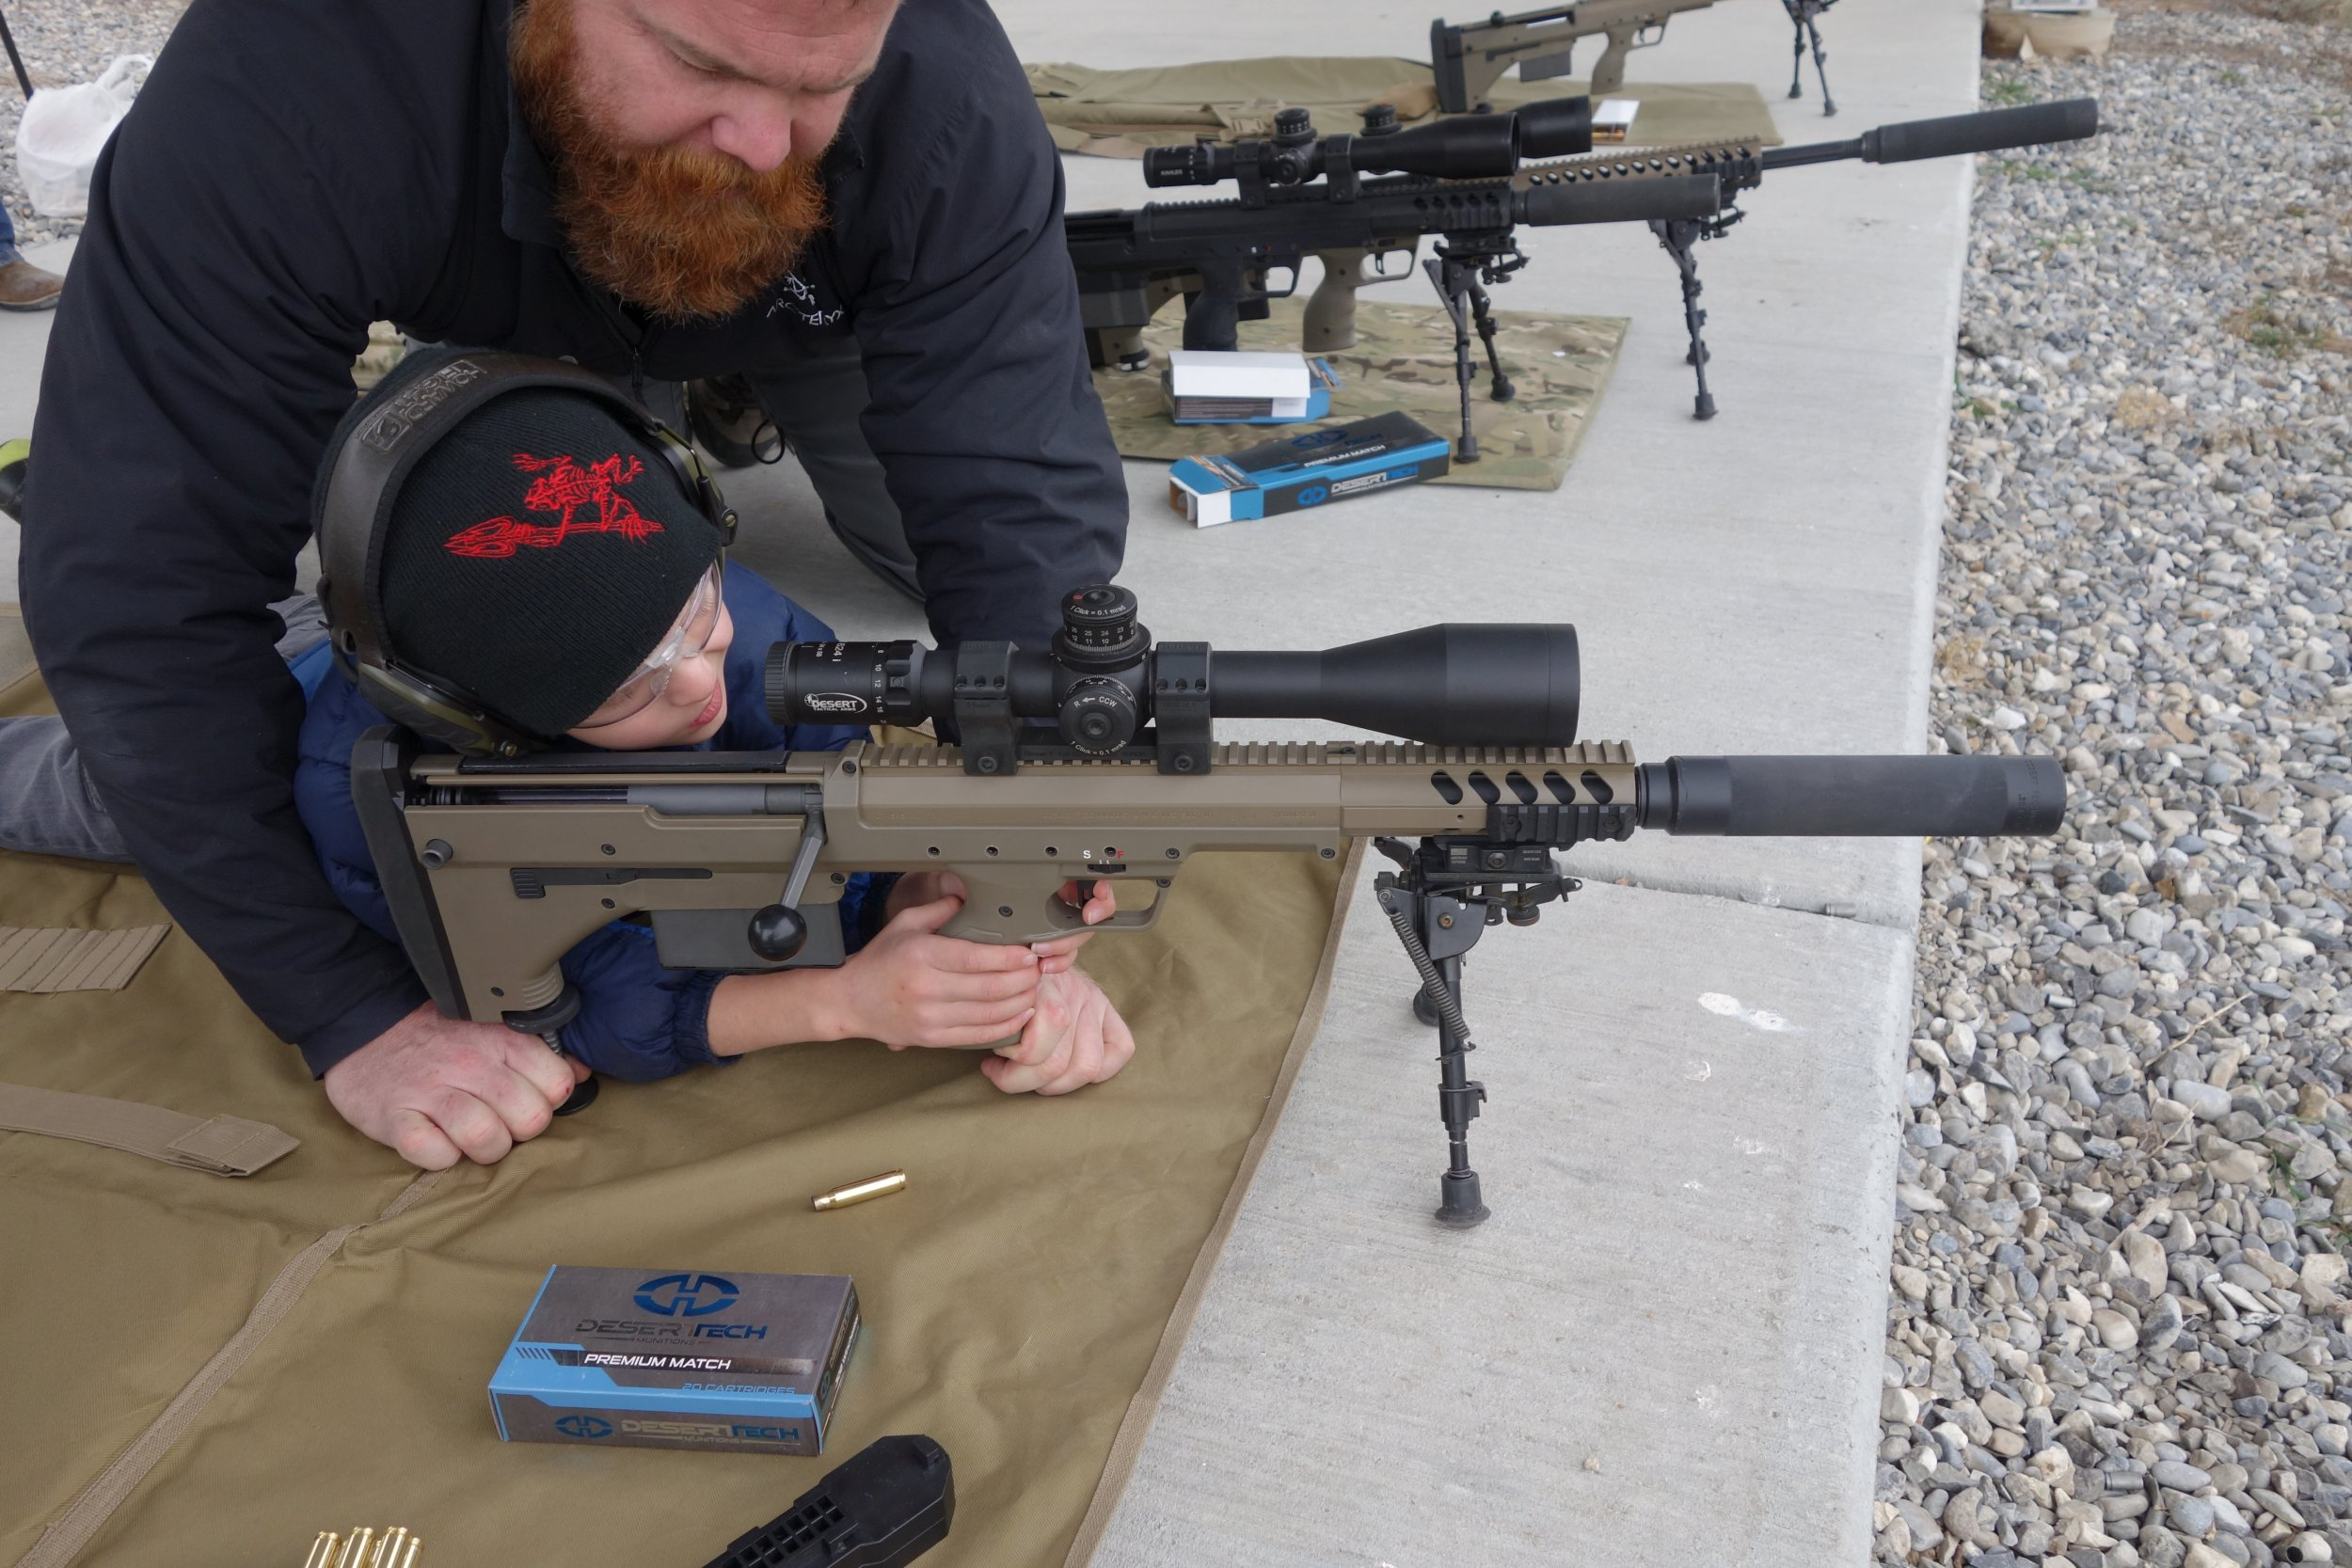 6 Year Old Kid Gets Quick Hits With Suppressed Desert Tech Dt Srs A1 Covert Stealth Recon Scout A1 Covert Bullpup Anti Materiel Sniper Rifle Carbine Defensereview Com Dr An Online Tactical Technology And Military Defense Technology Magazine With